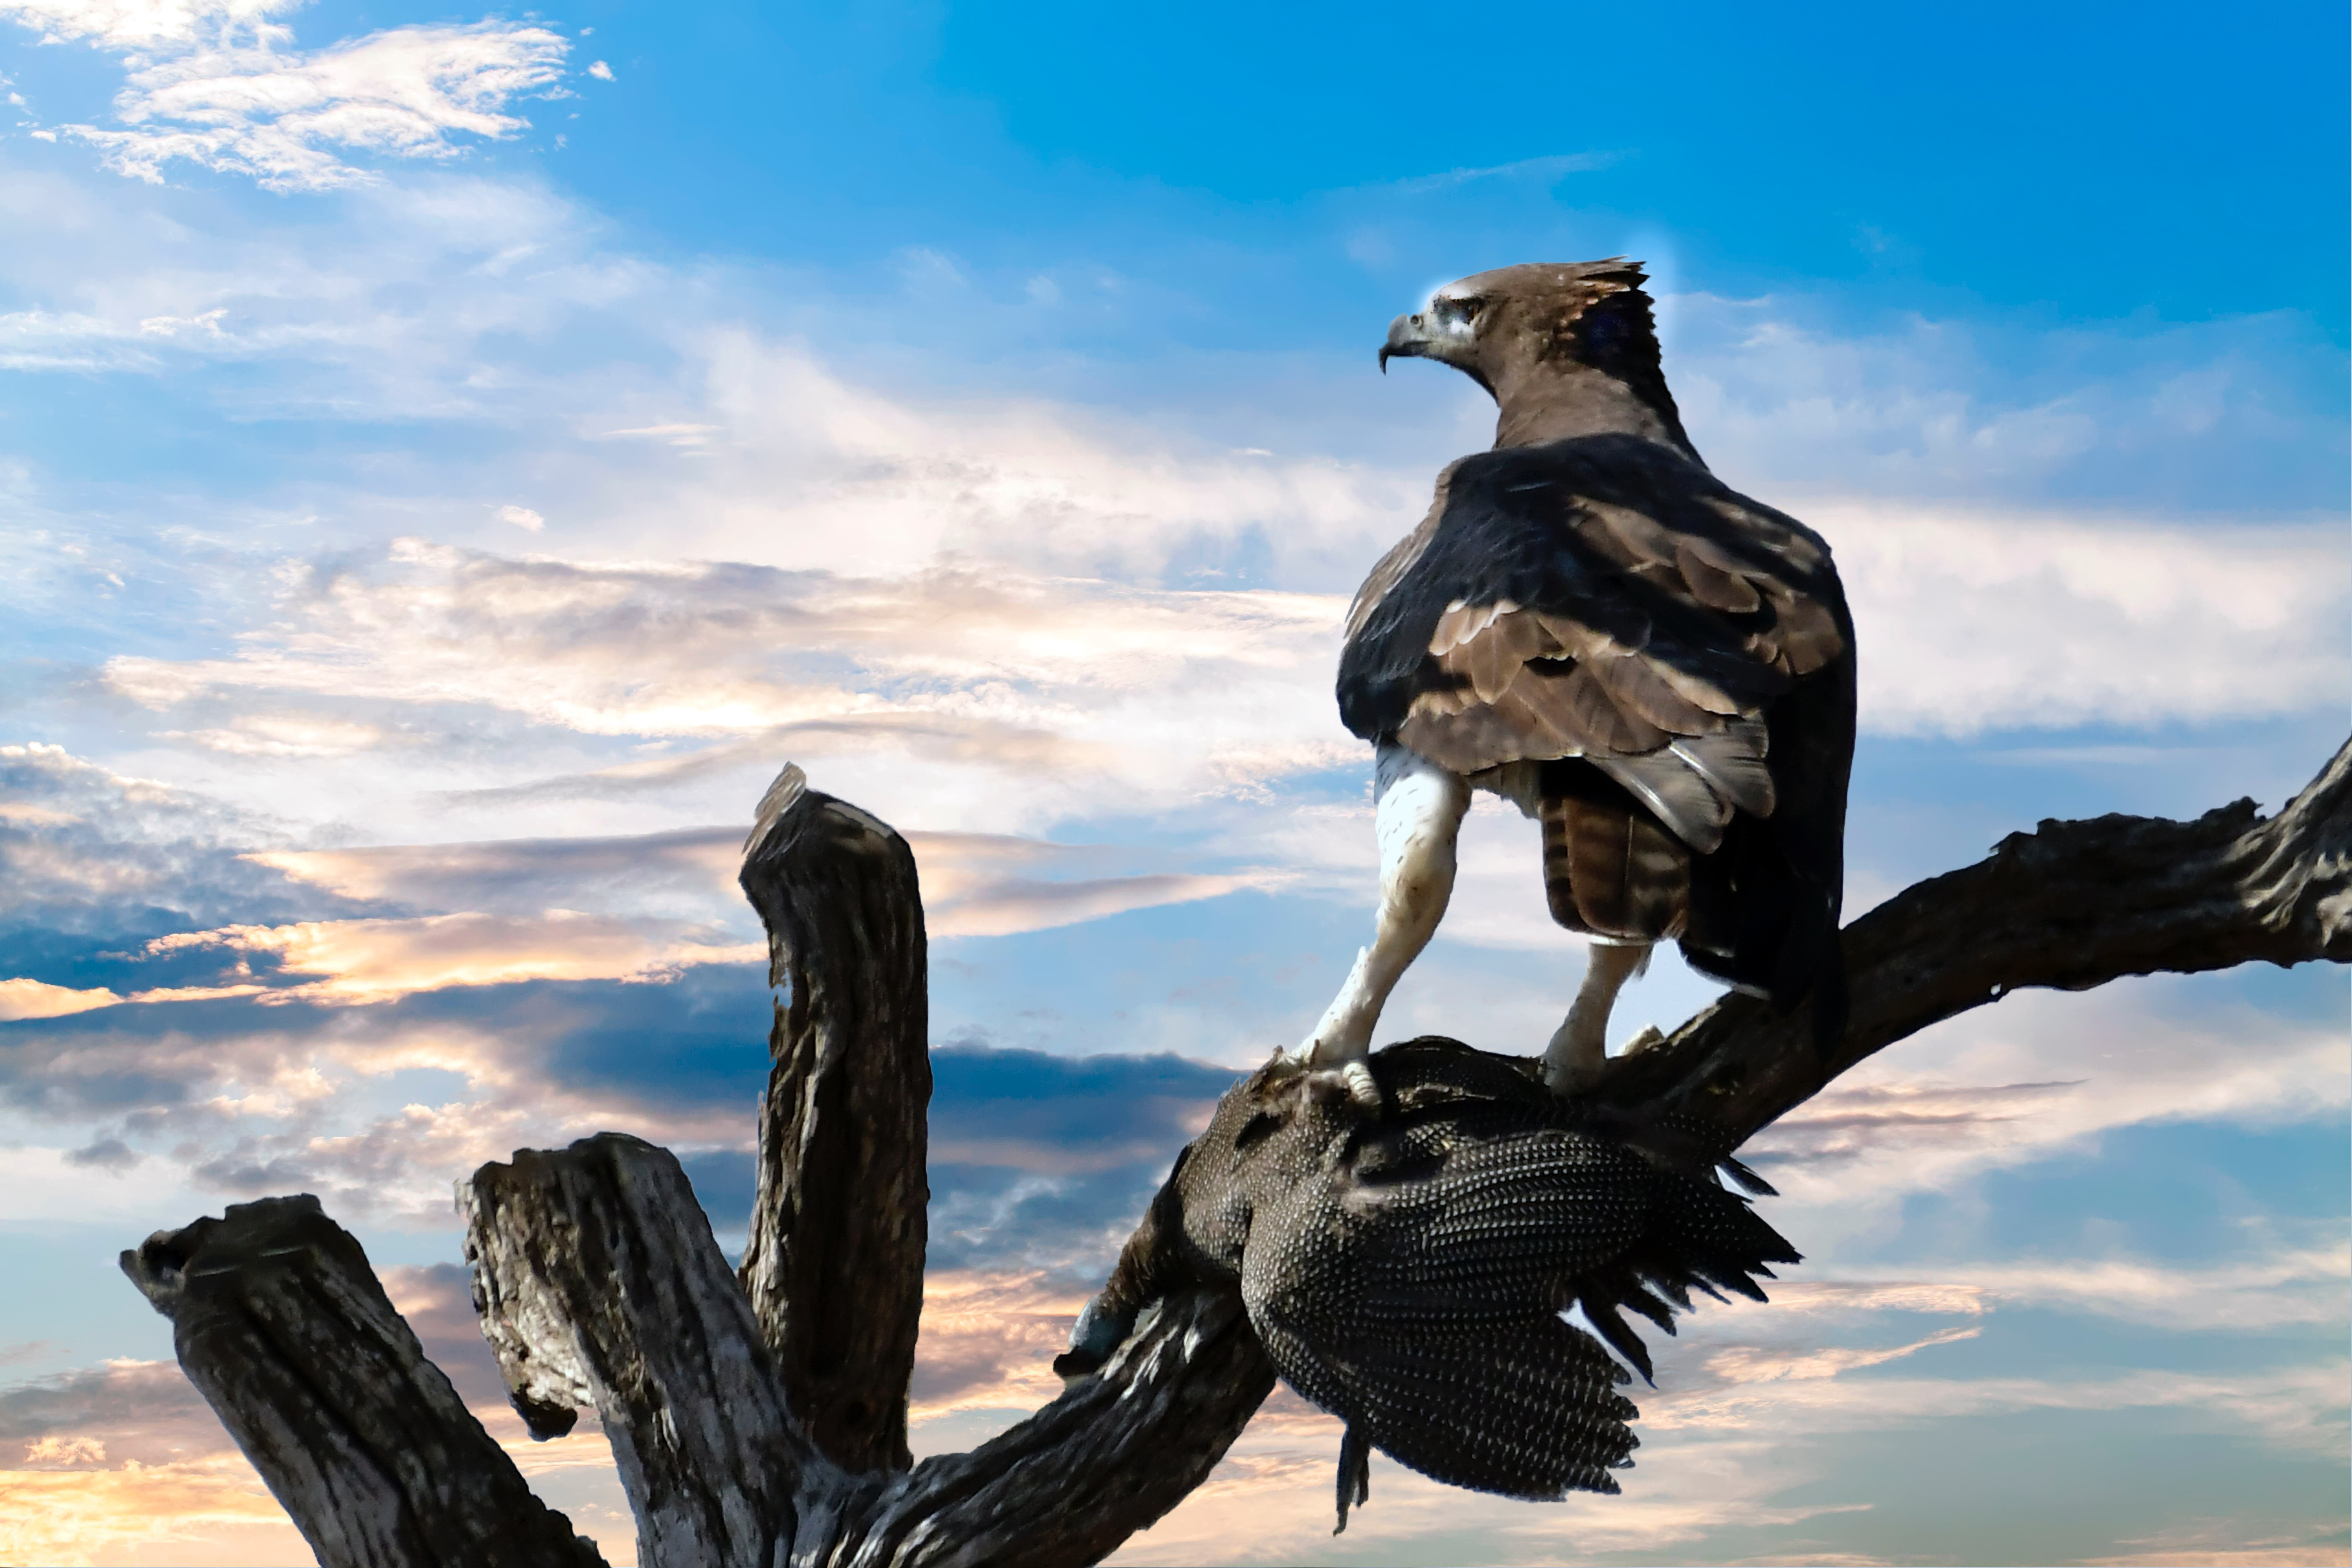 Eagle perched on tree branch photo